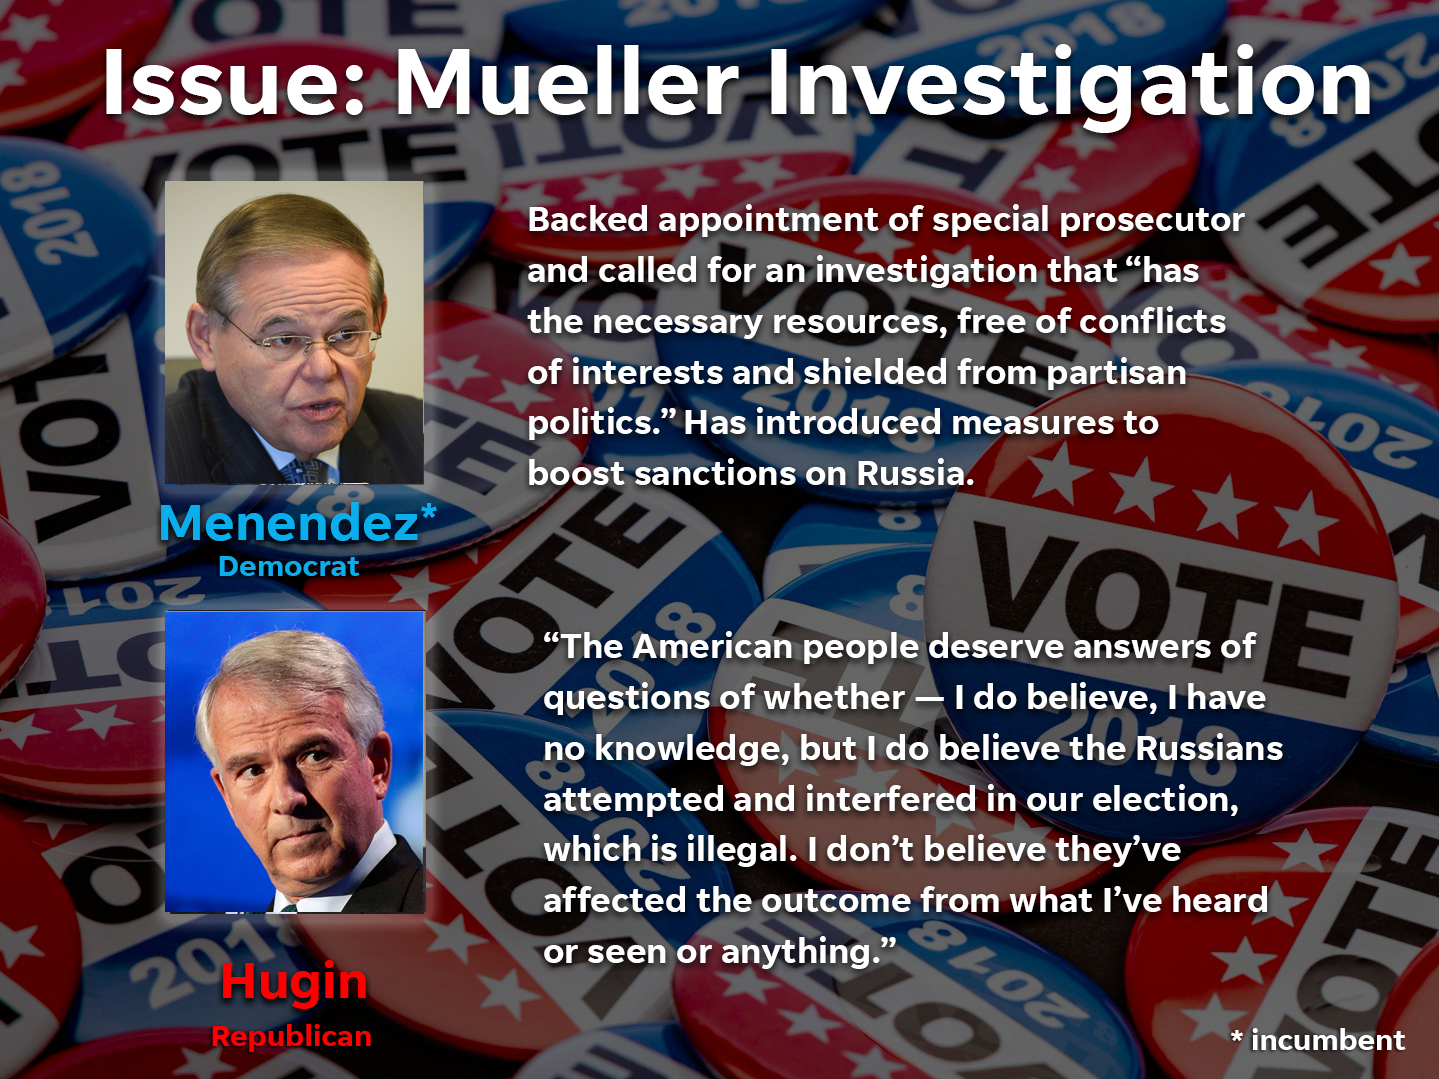 Here's where the candidates stand on the Mueller investigation.